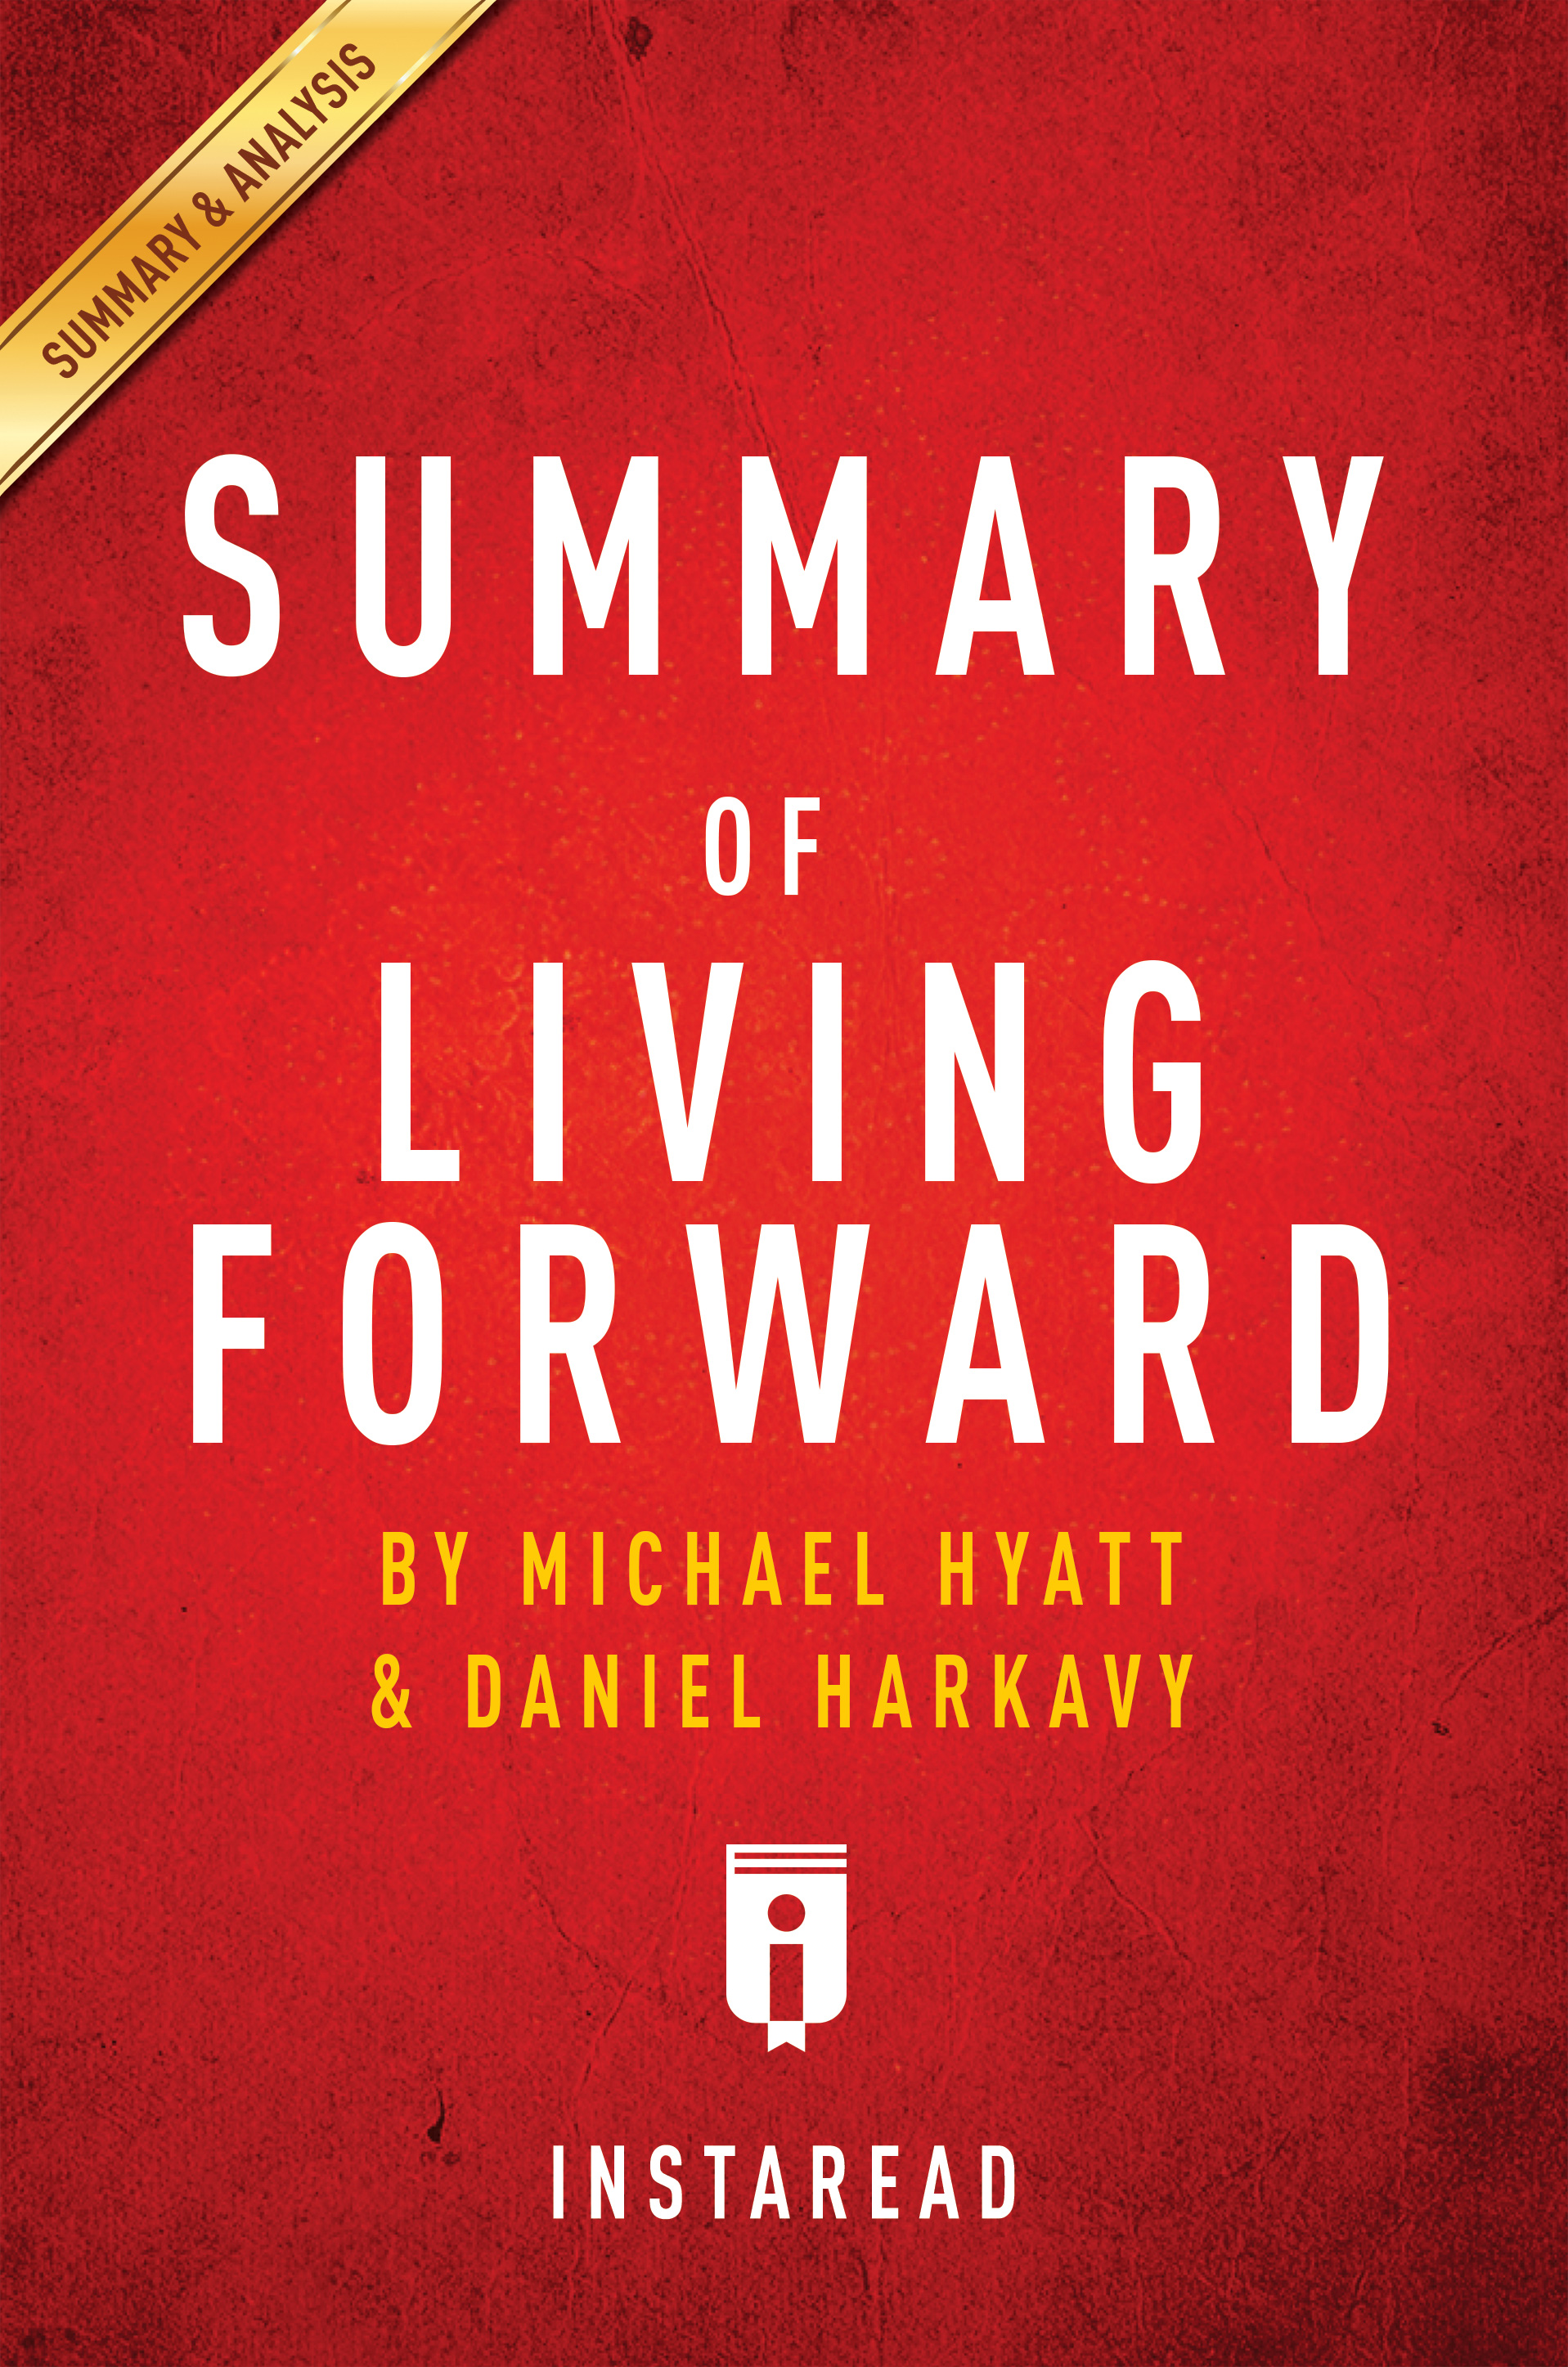 Download Ebook Summary of Living Forward by . Instaread Pdf